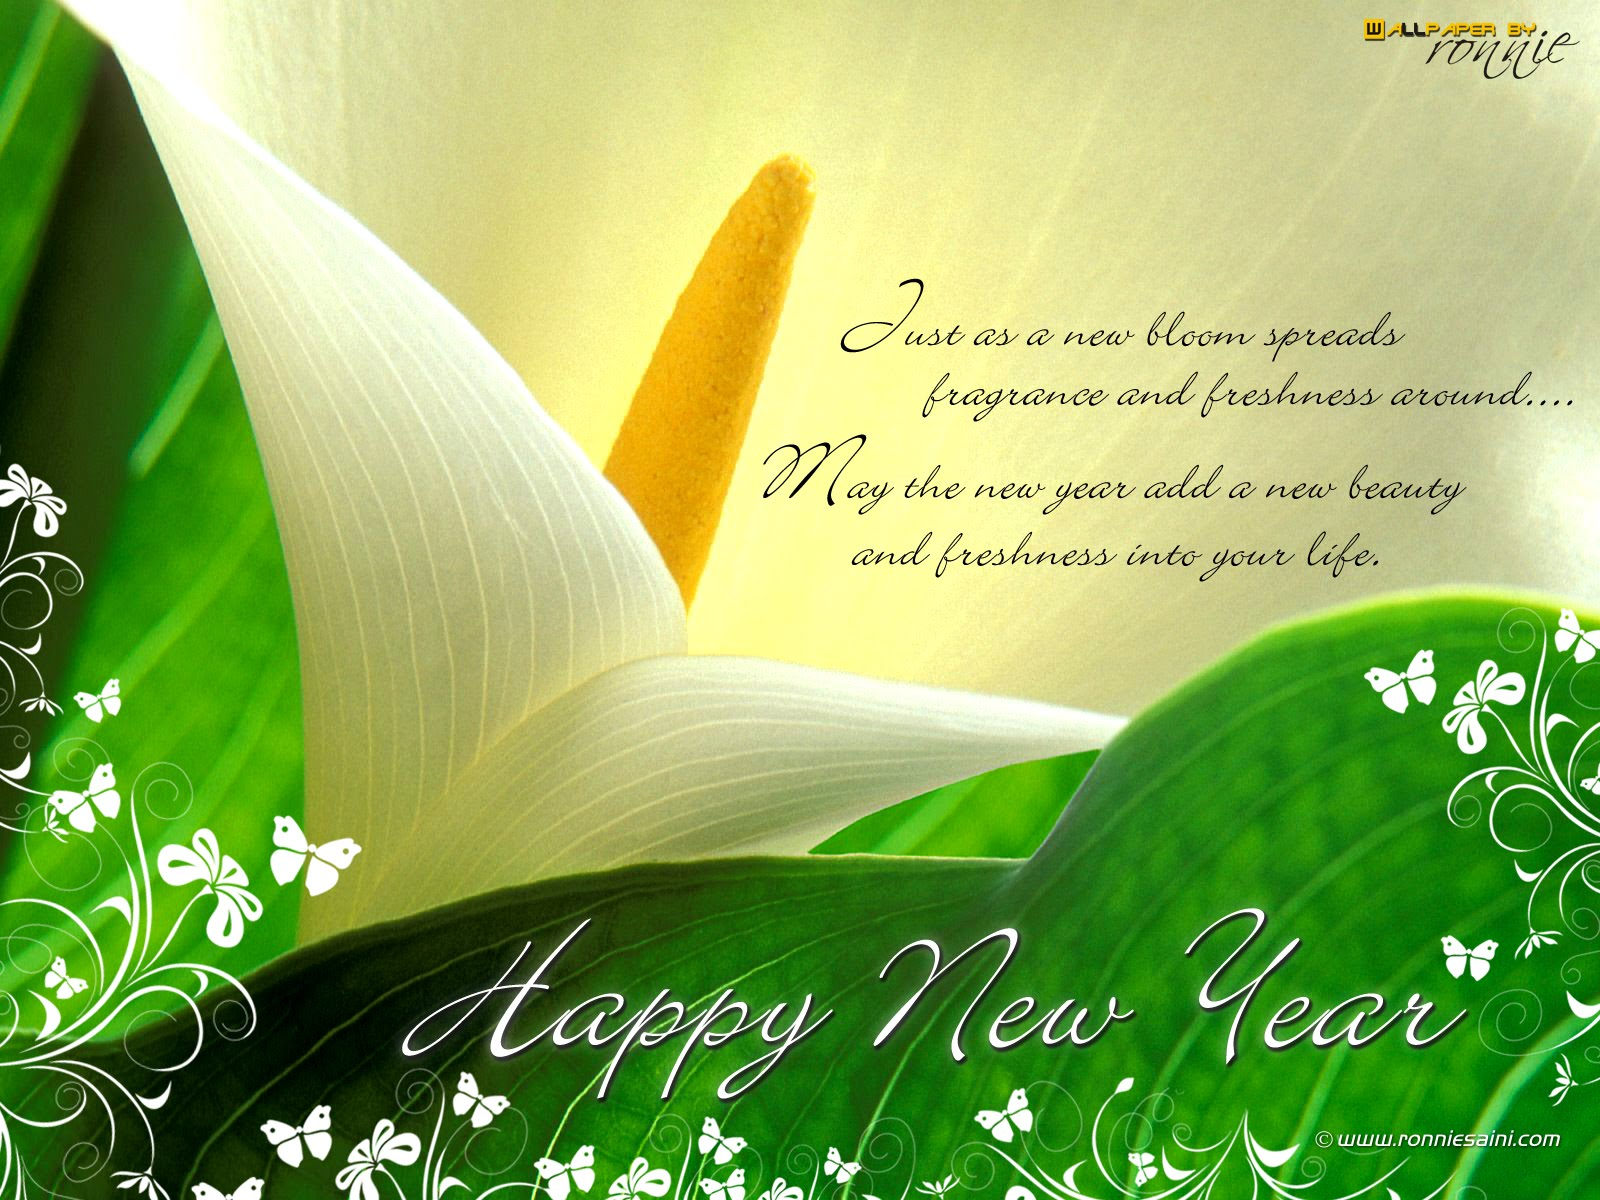 Happy New Year Wishes and Greetings. 1600 x 1200.Happy New Year E-cards Free